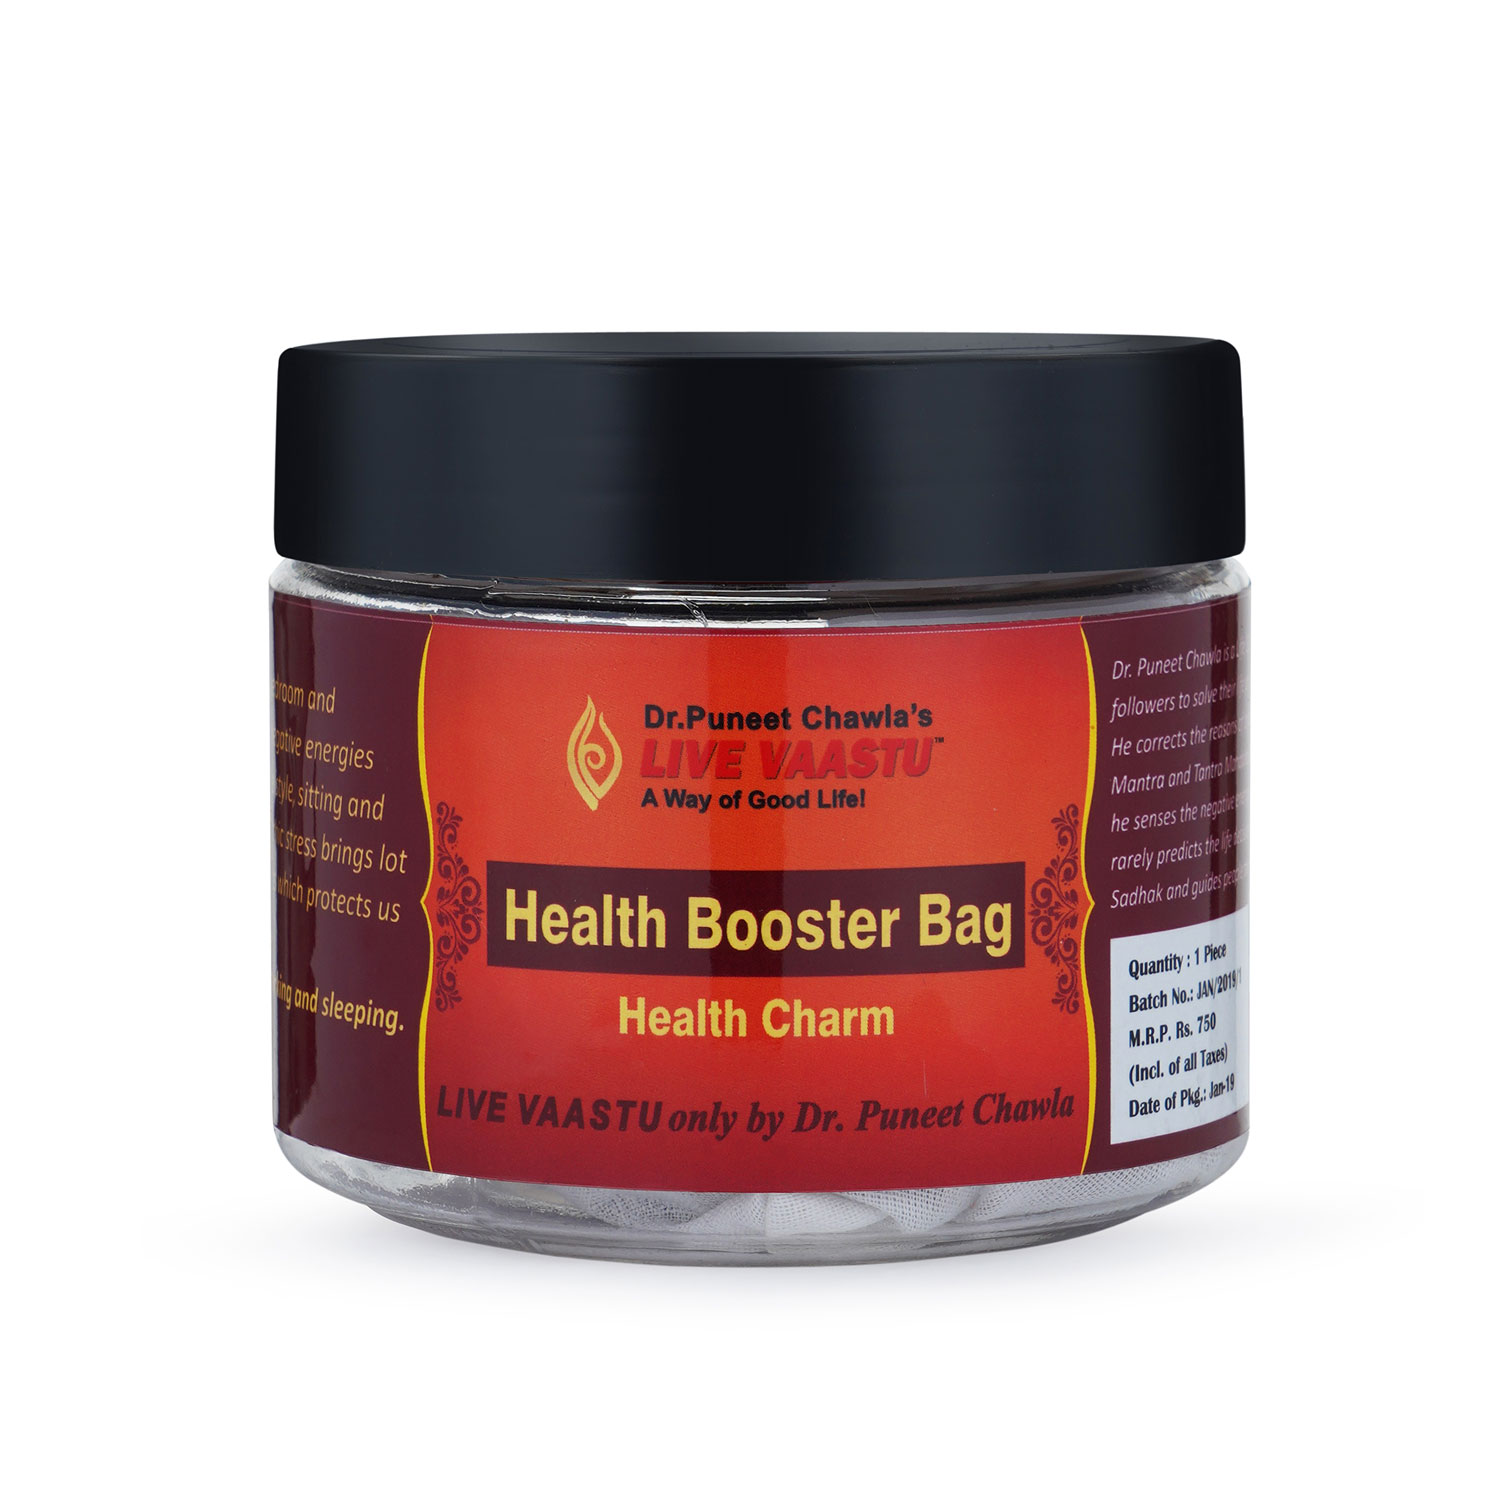 HEALTH BOOSTER BAG